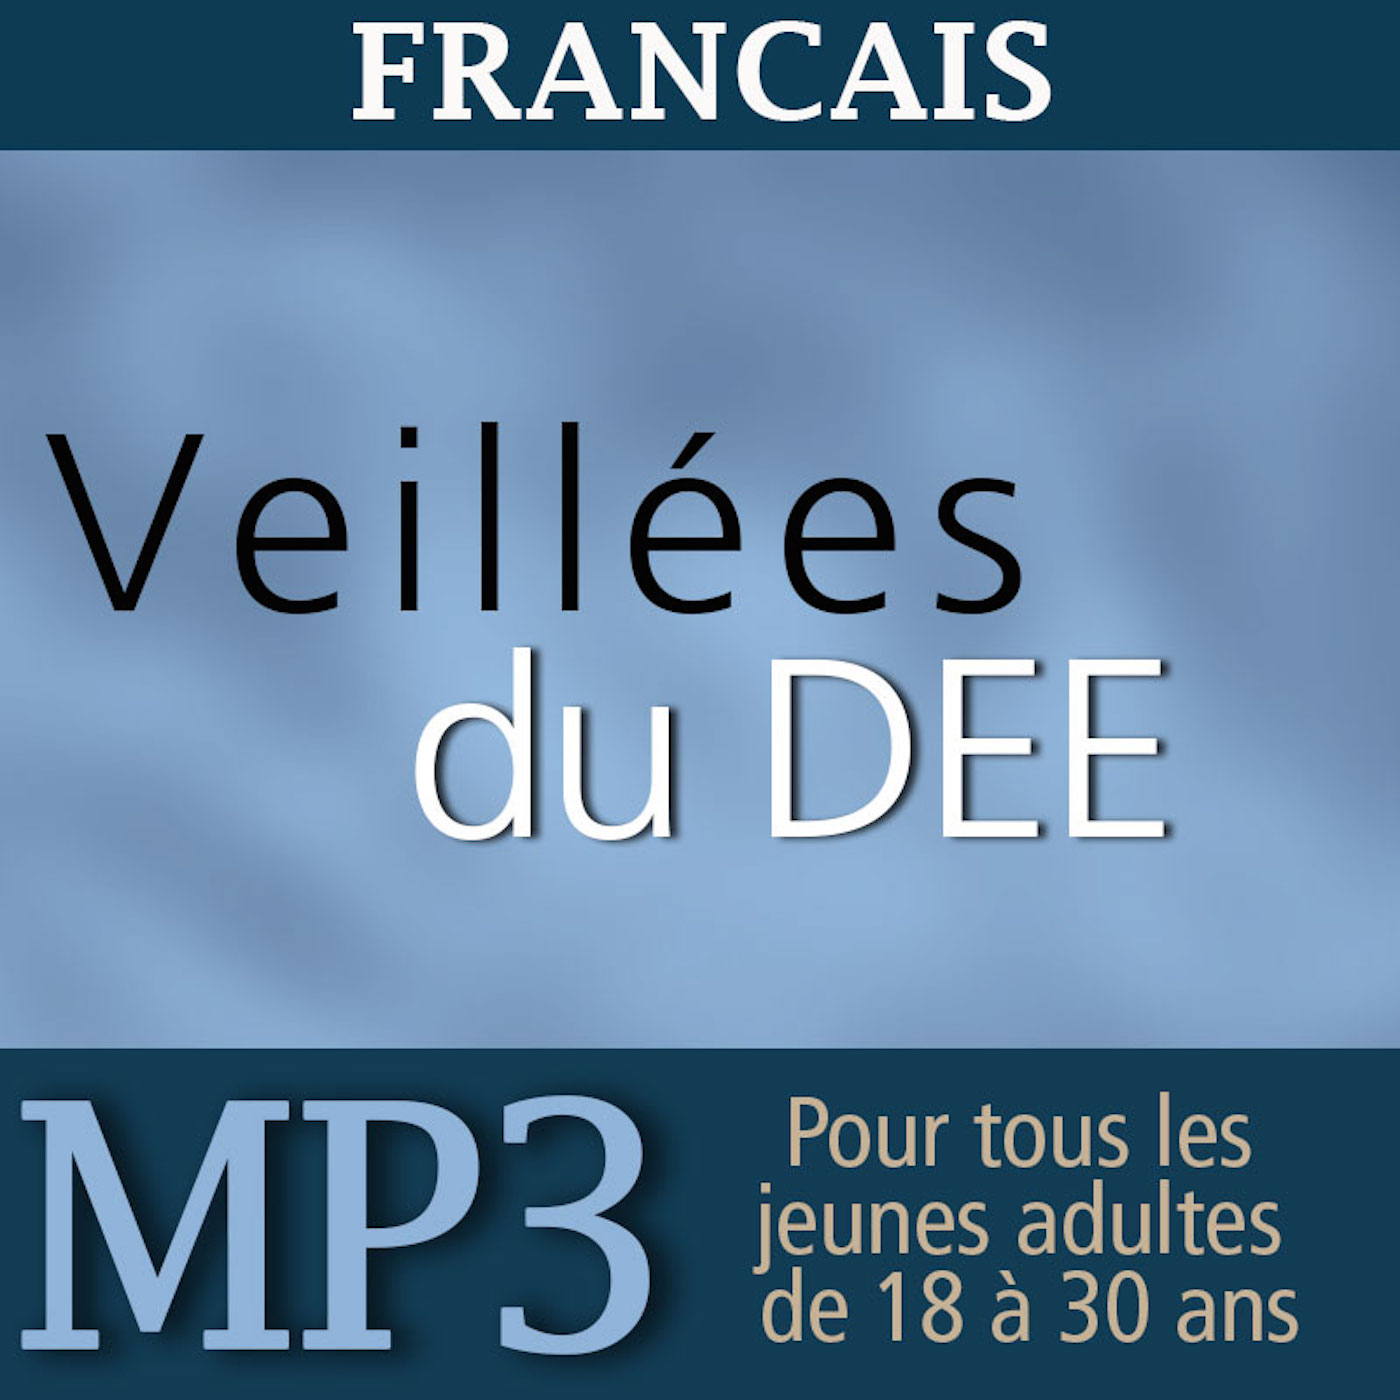 Worldwide Devotional For Young Adults | MP3 | FRENCH